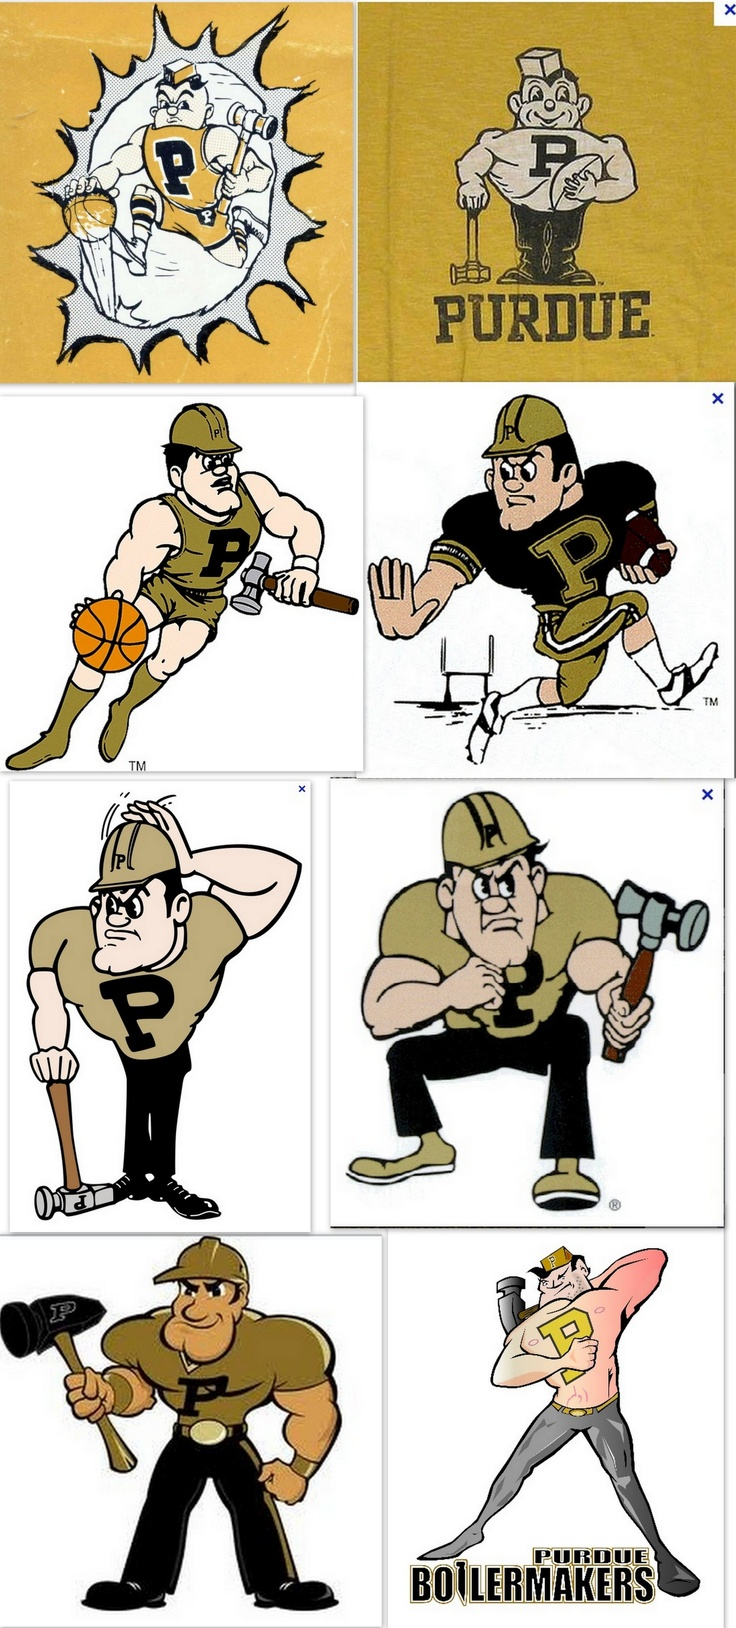 The many faces of Purdue Pete. Looks like they are trying to Marvelize him